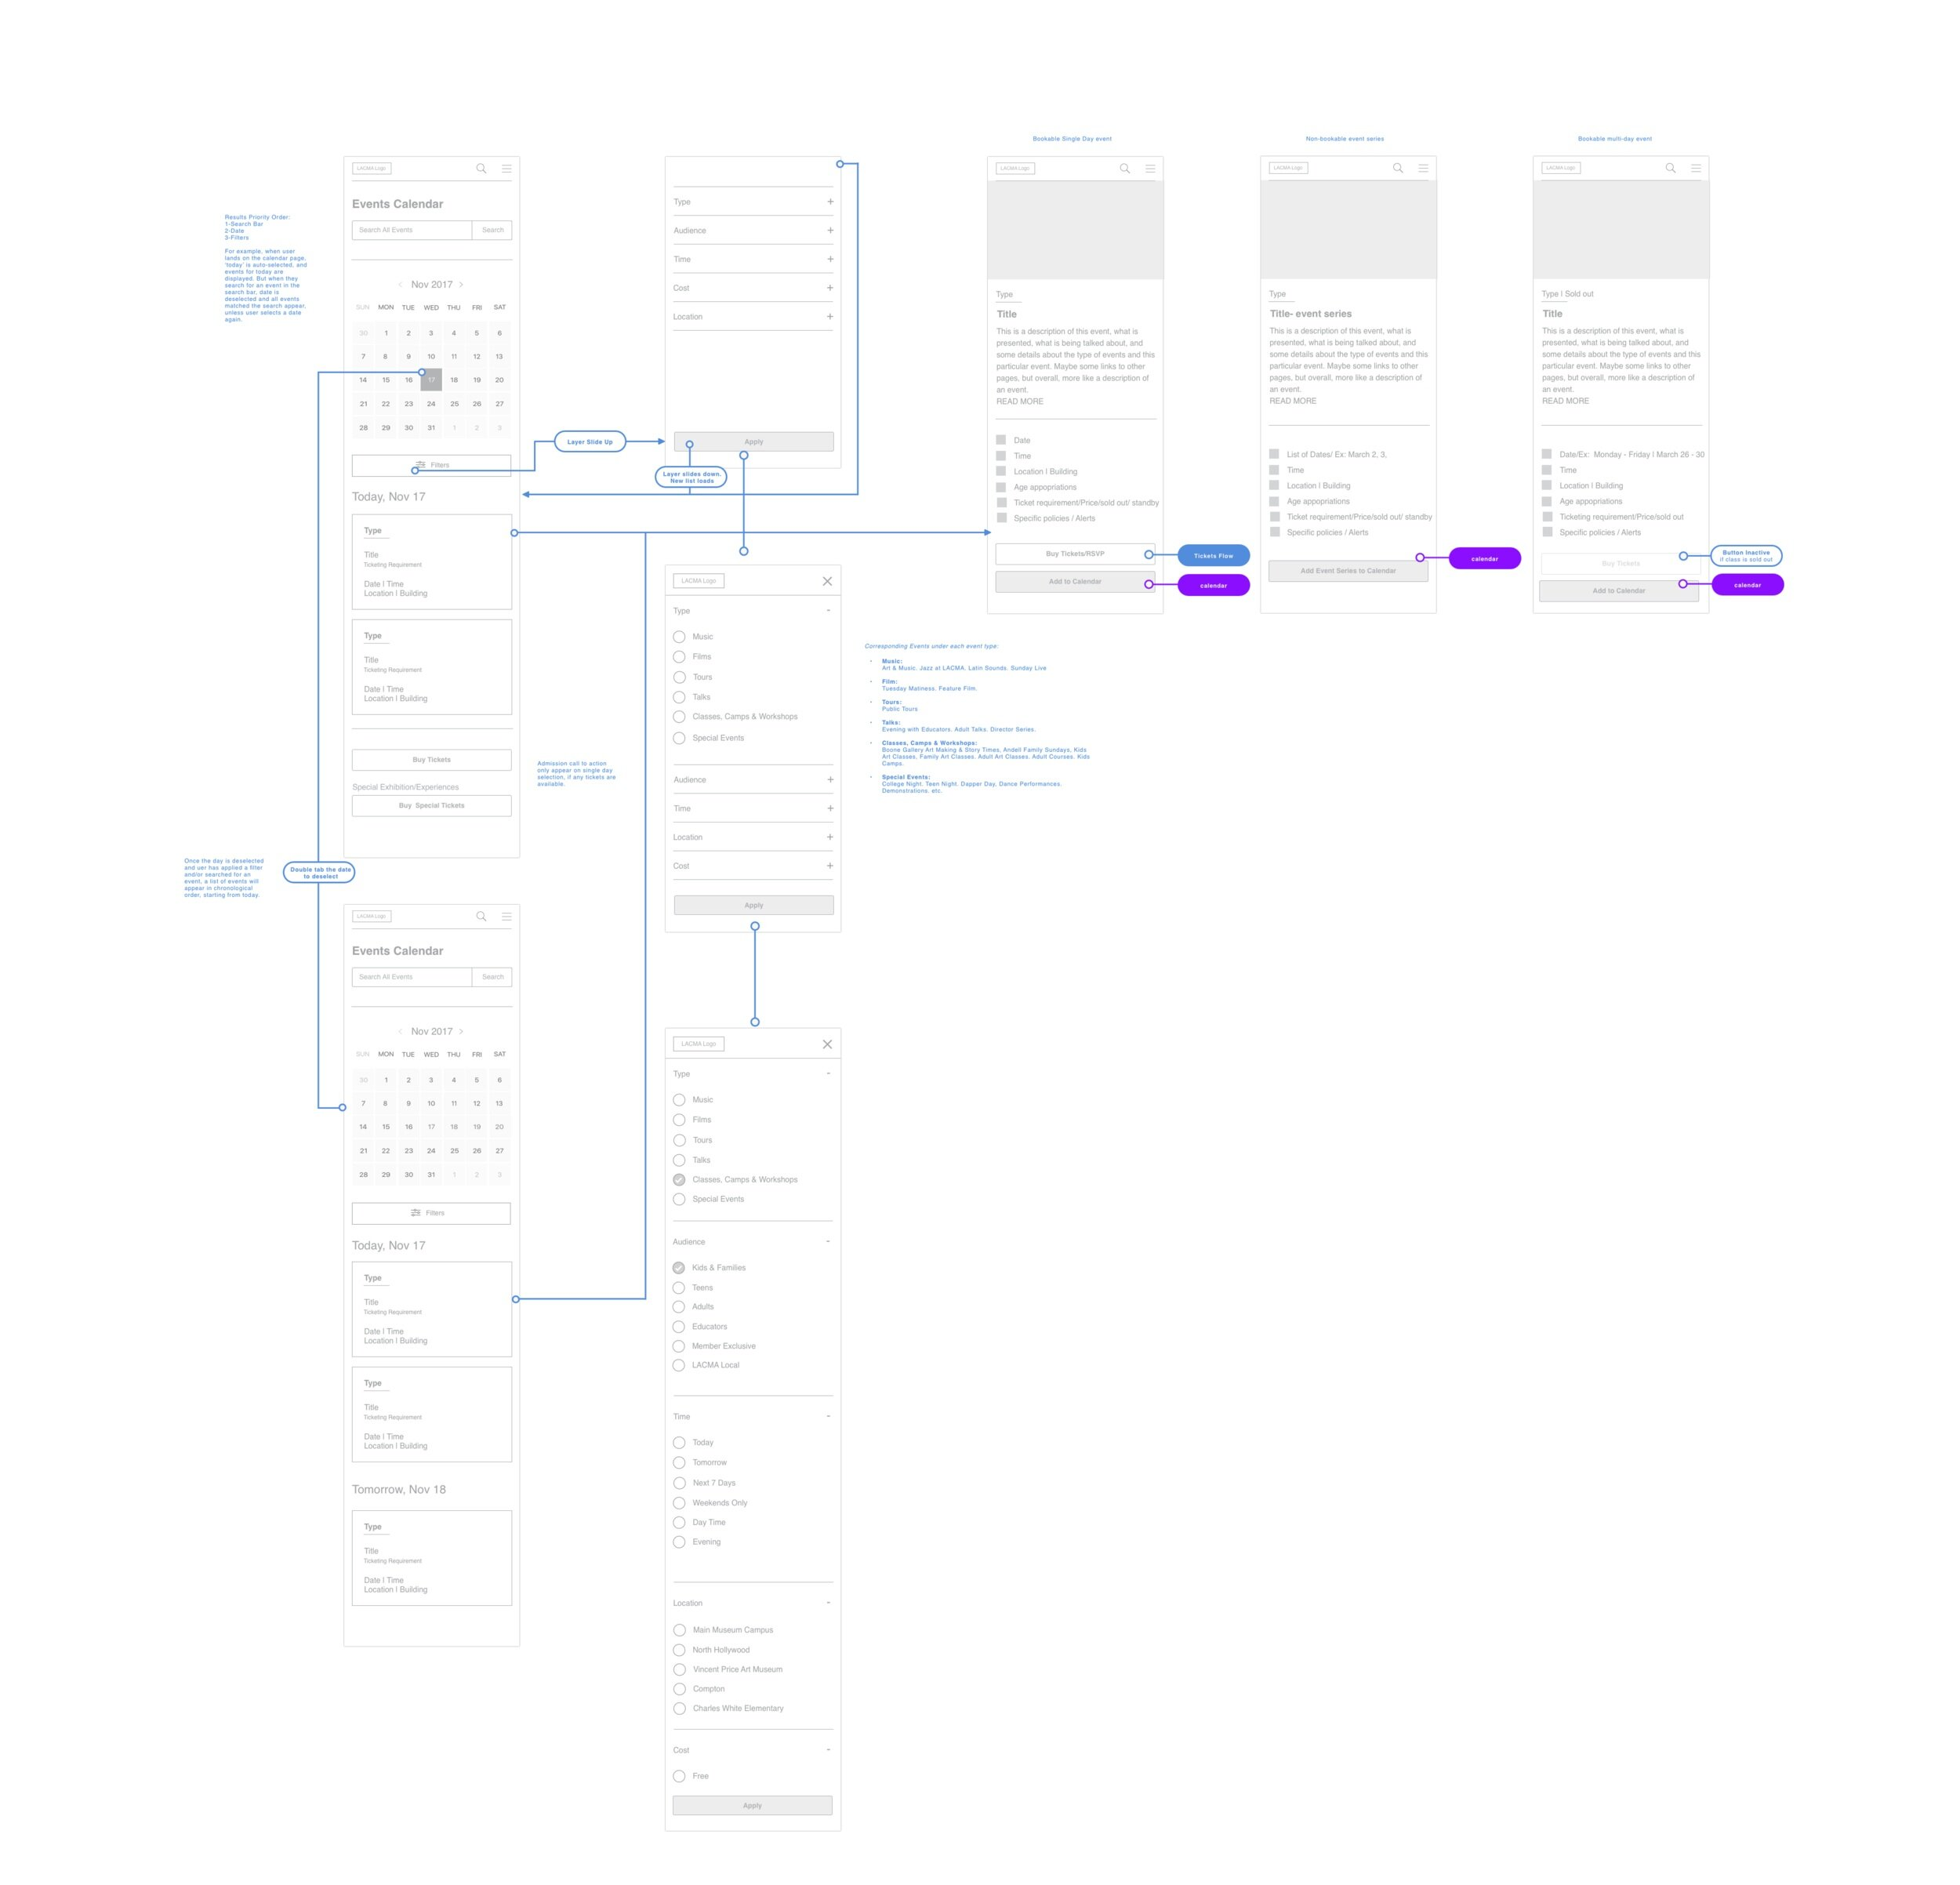 Sample wireframe - Userflow wireframes for the events calendar and interaction annotation.